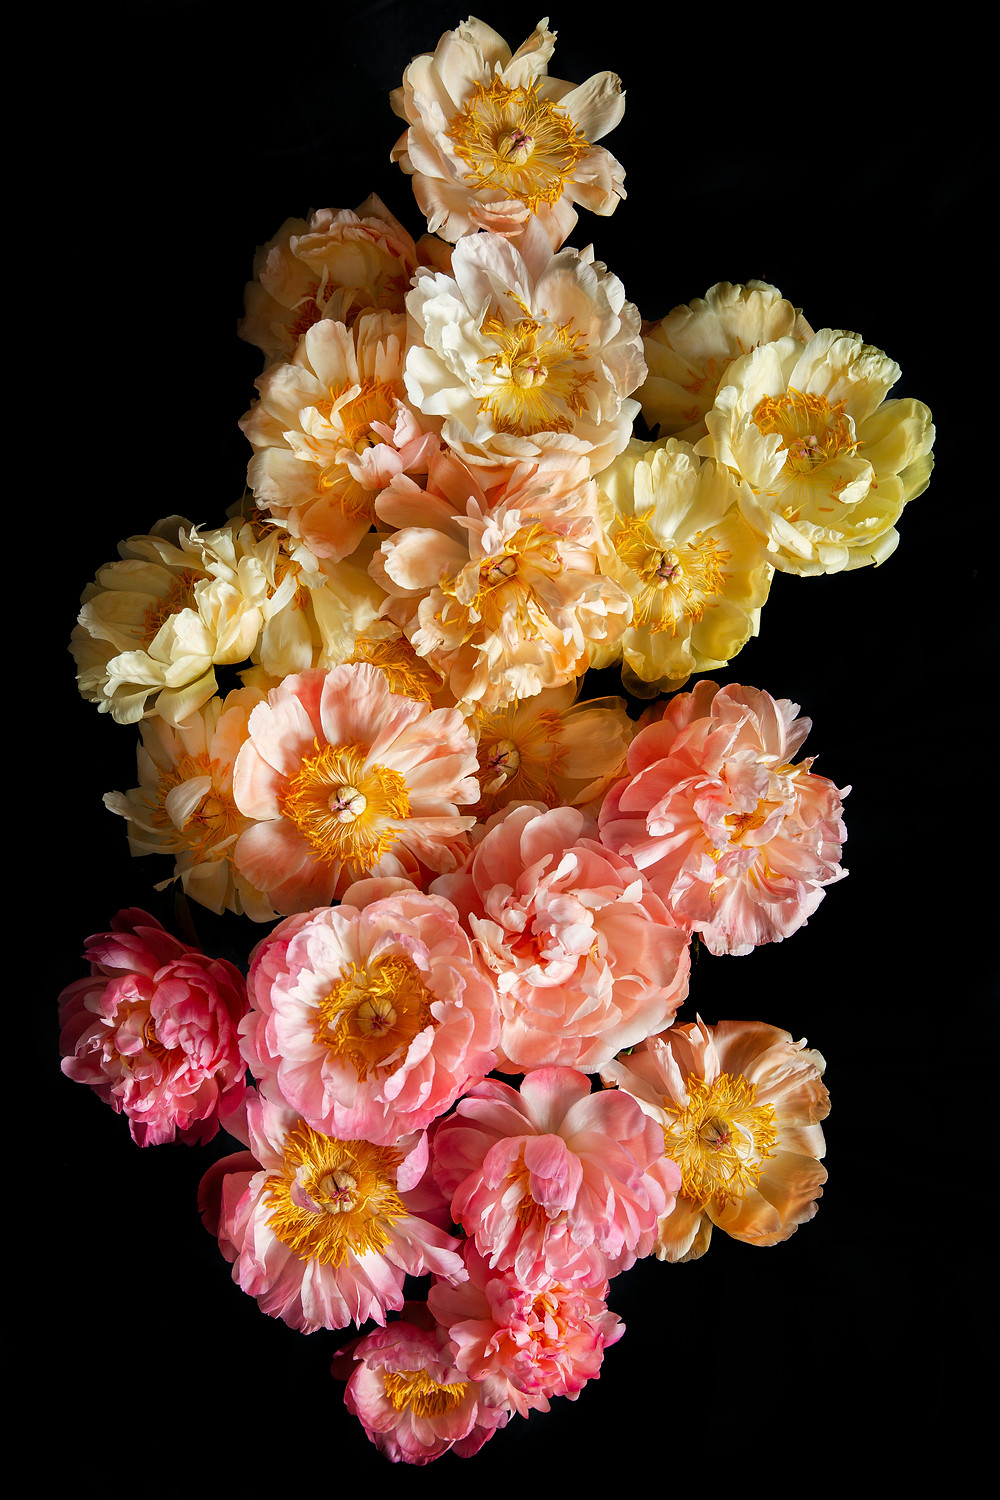 peonies in various shades, flower photography